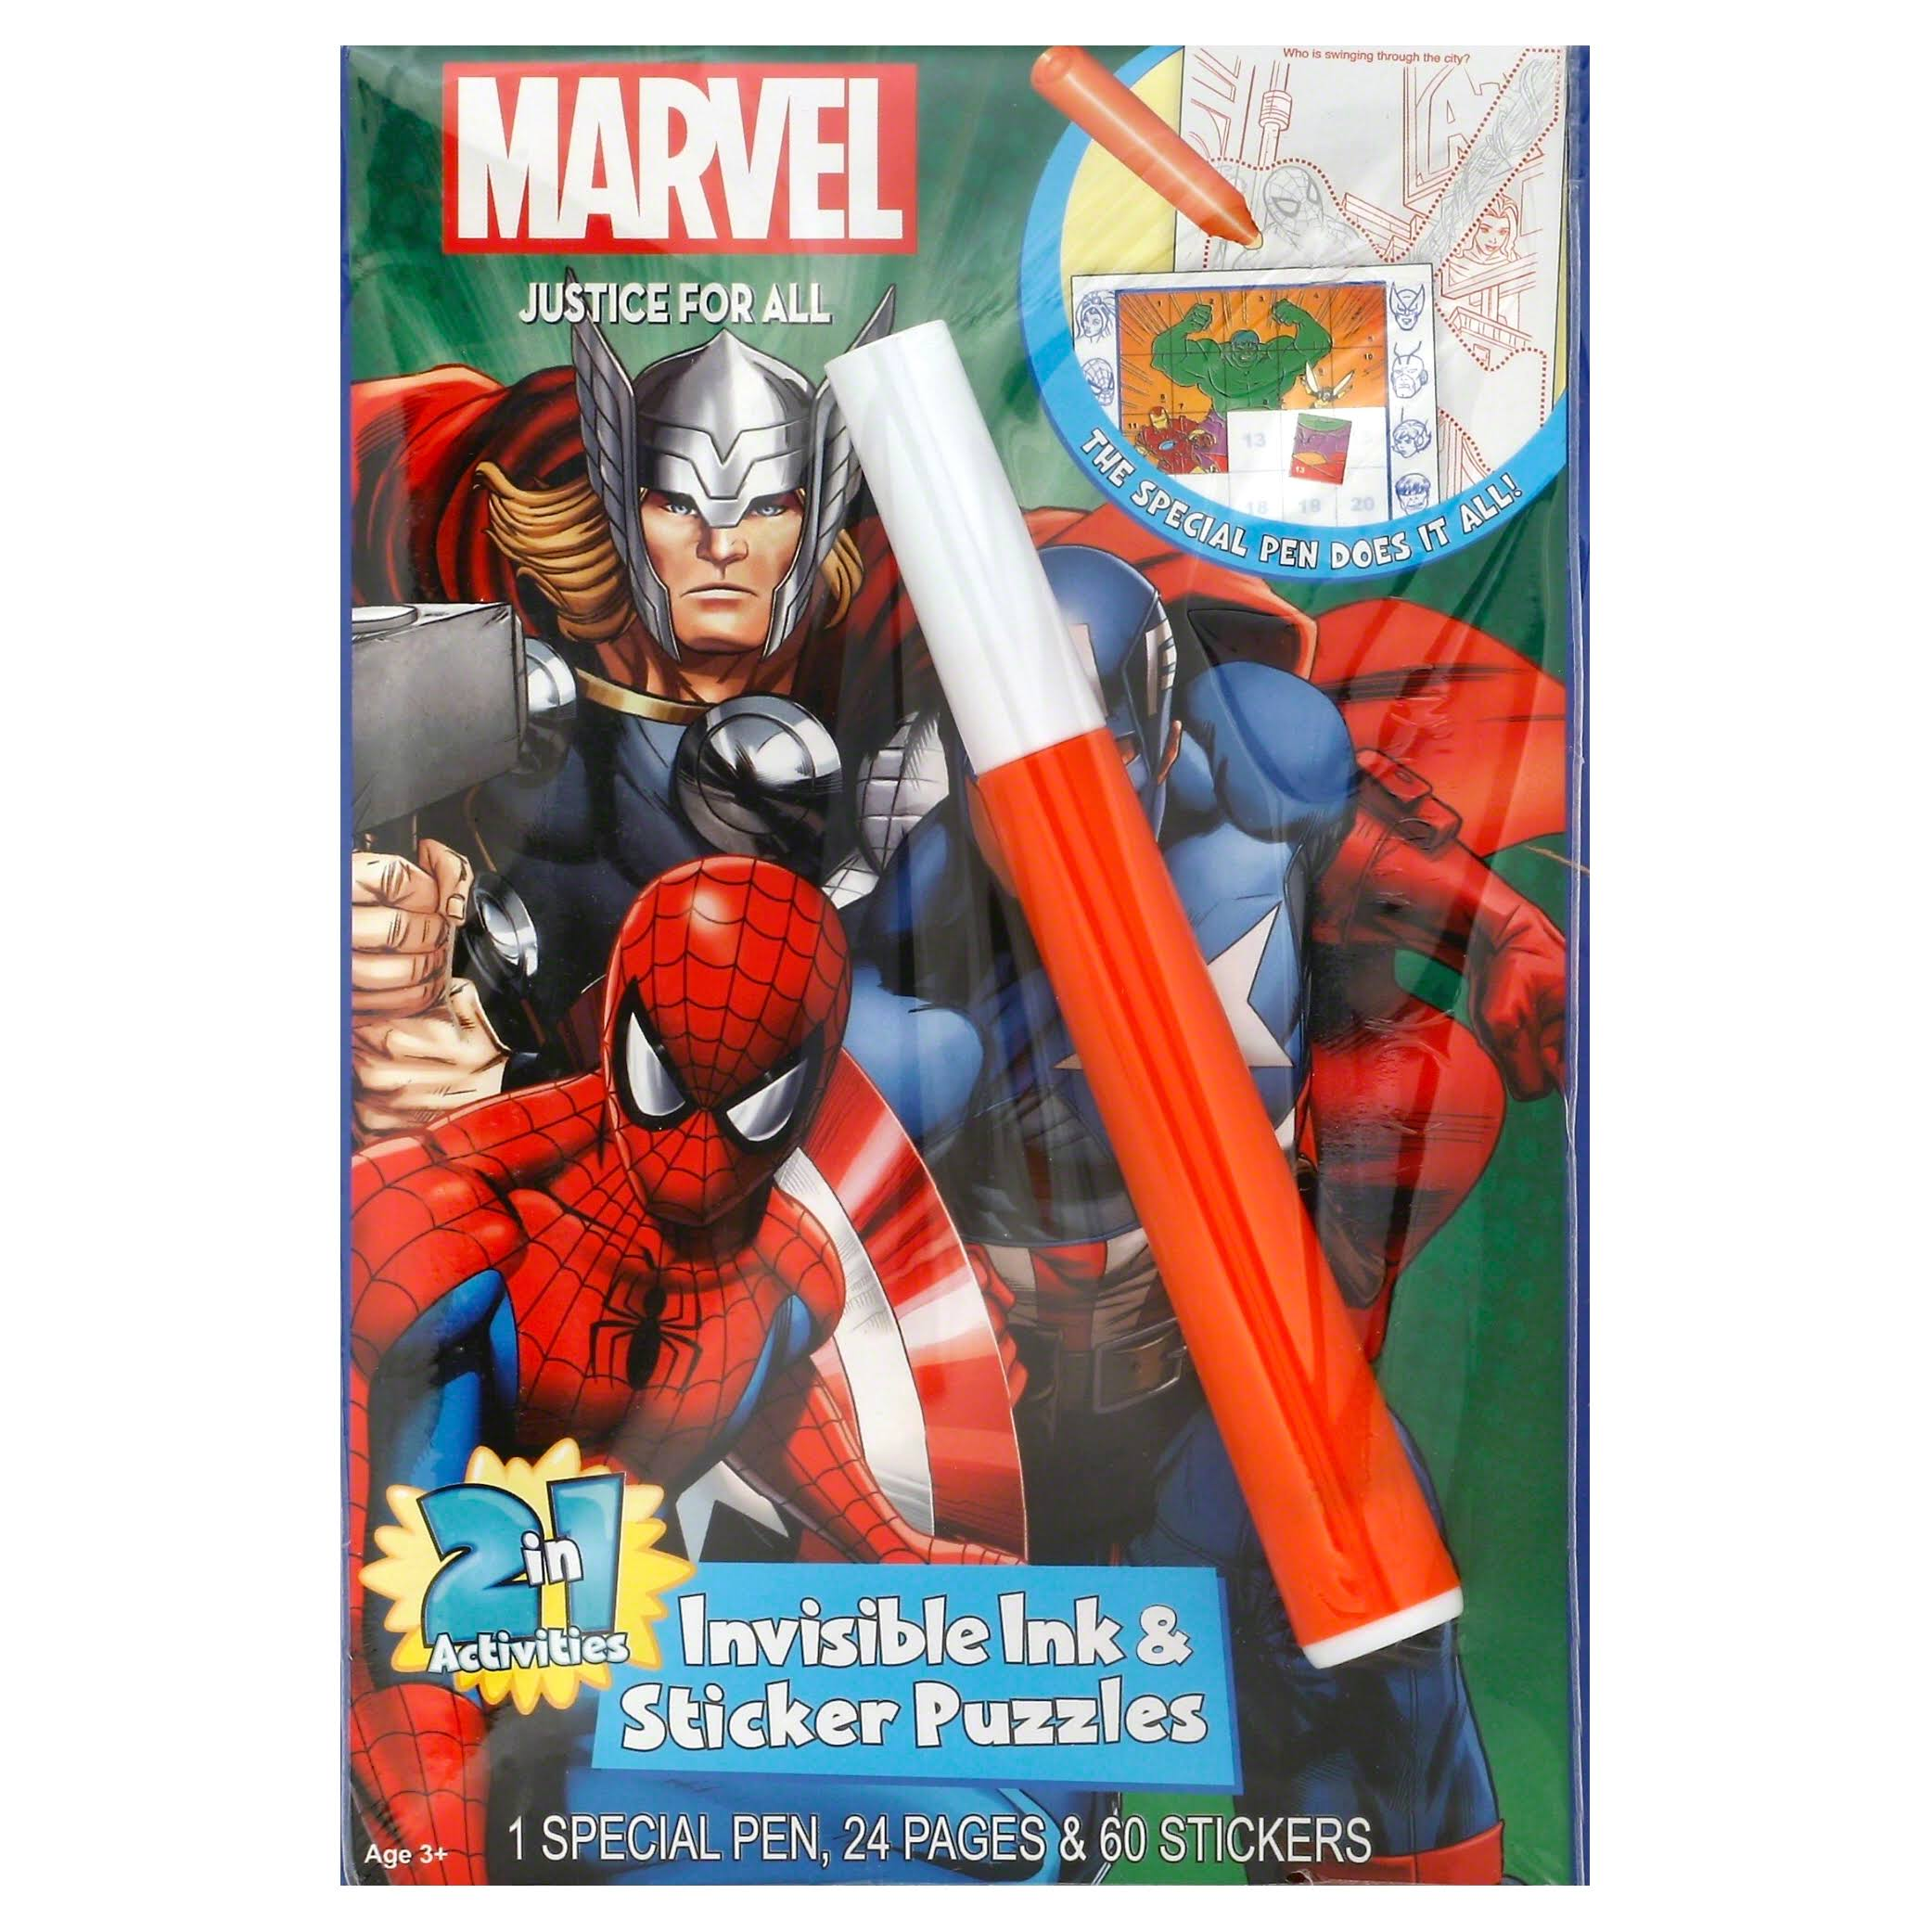 Marvel Heros Justice for All 2in1 Invisible Ink Sticker Puzzle